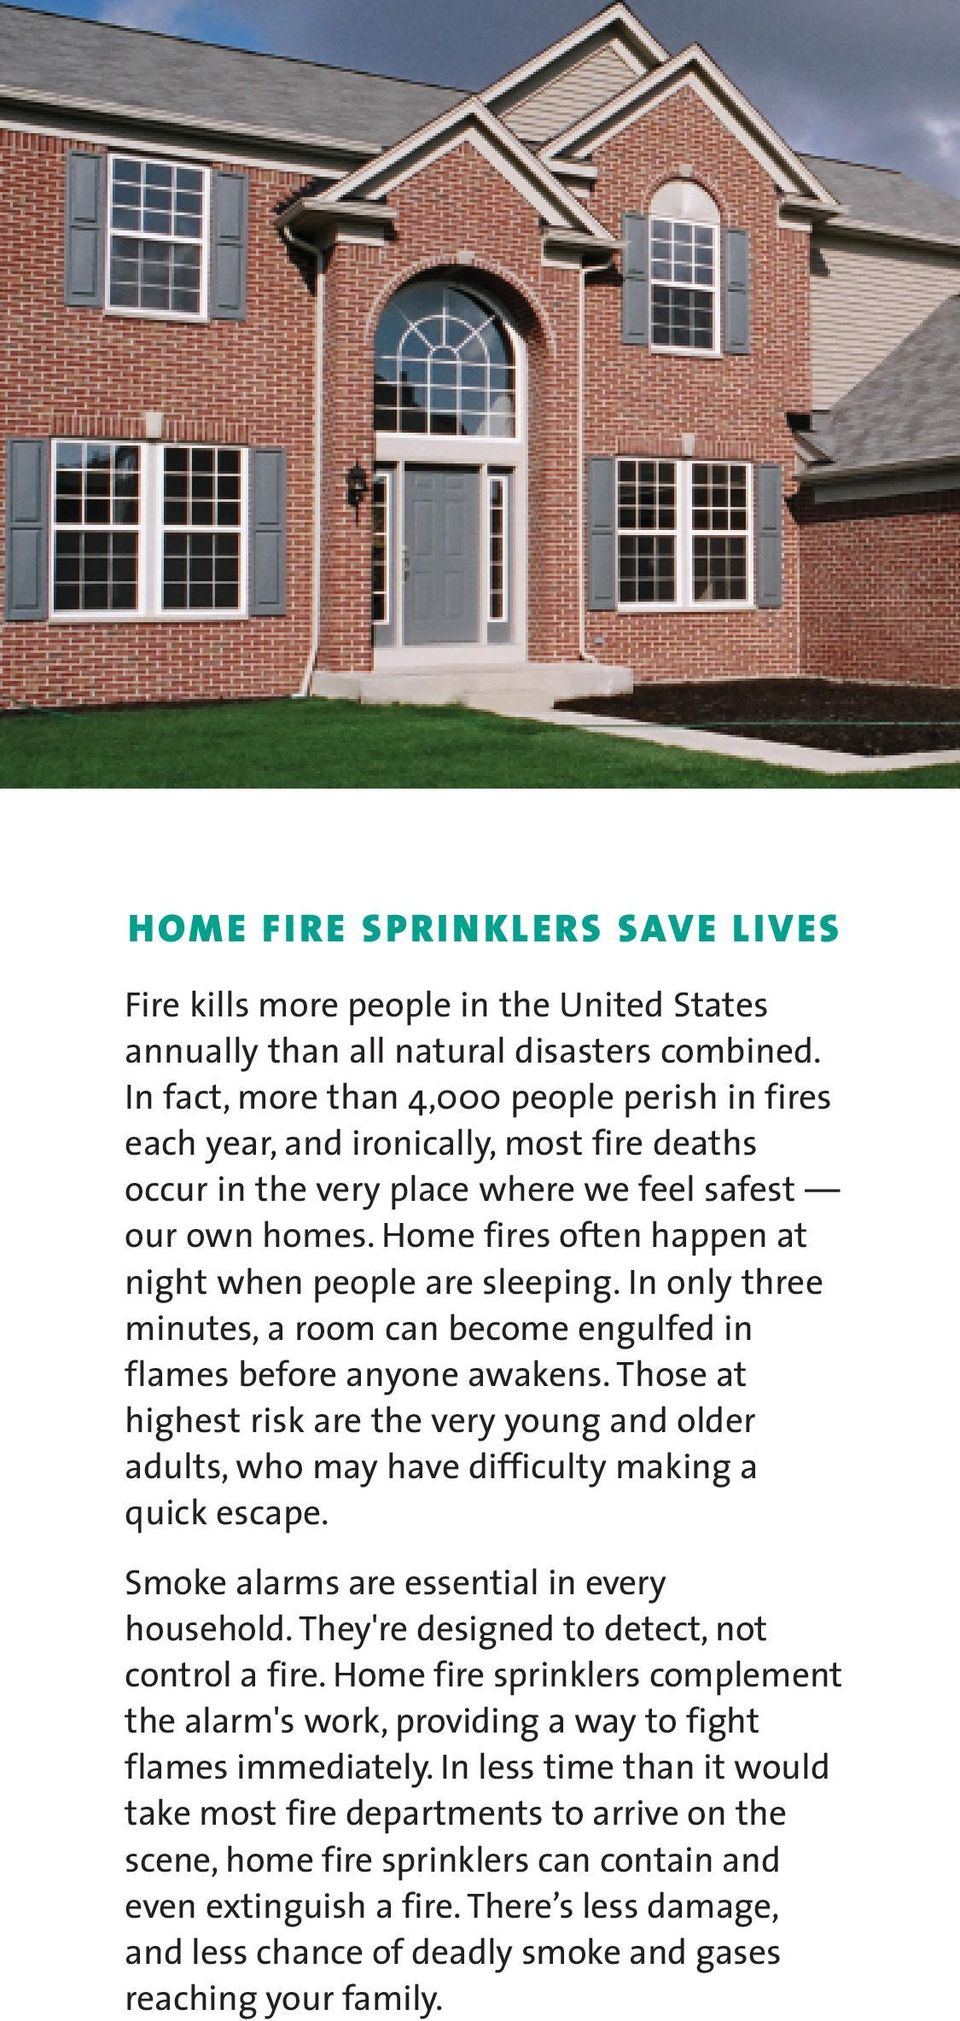 Home fires often happen at night when people are sleeping. In only three minutes, a room can become engulfed in flames before anyone awakens.